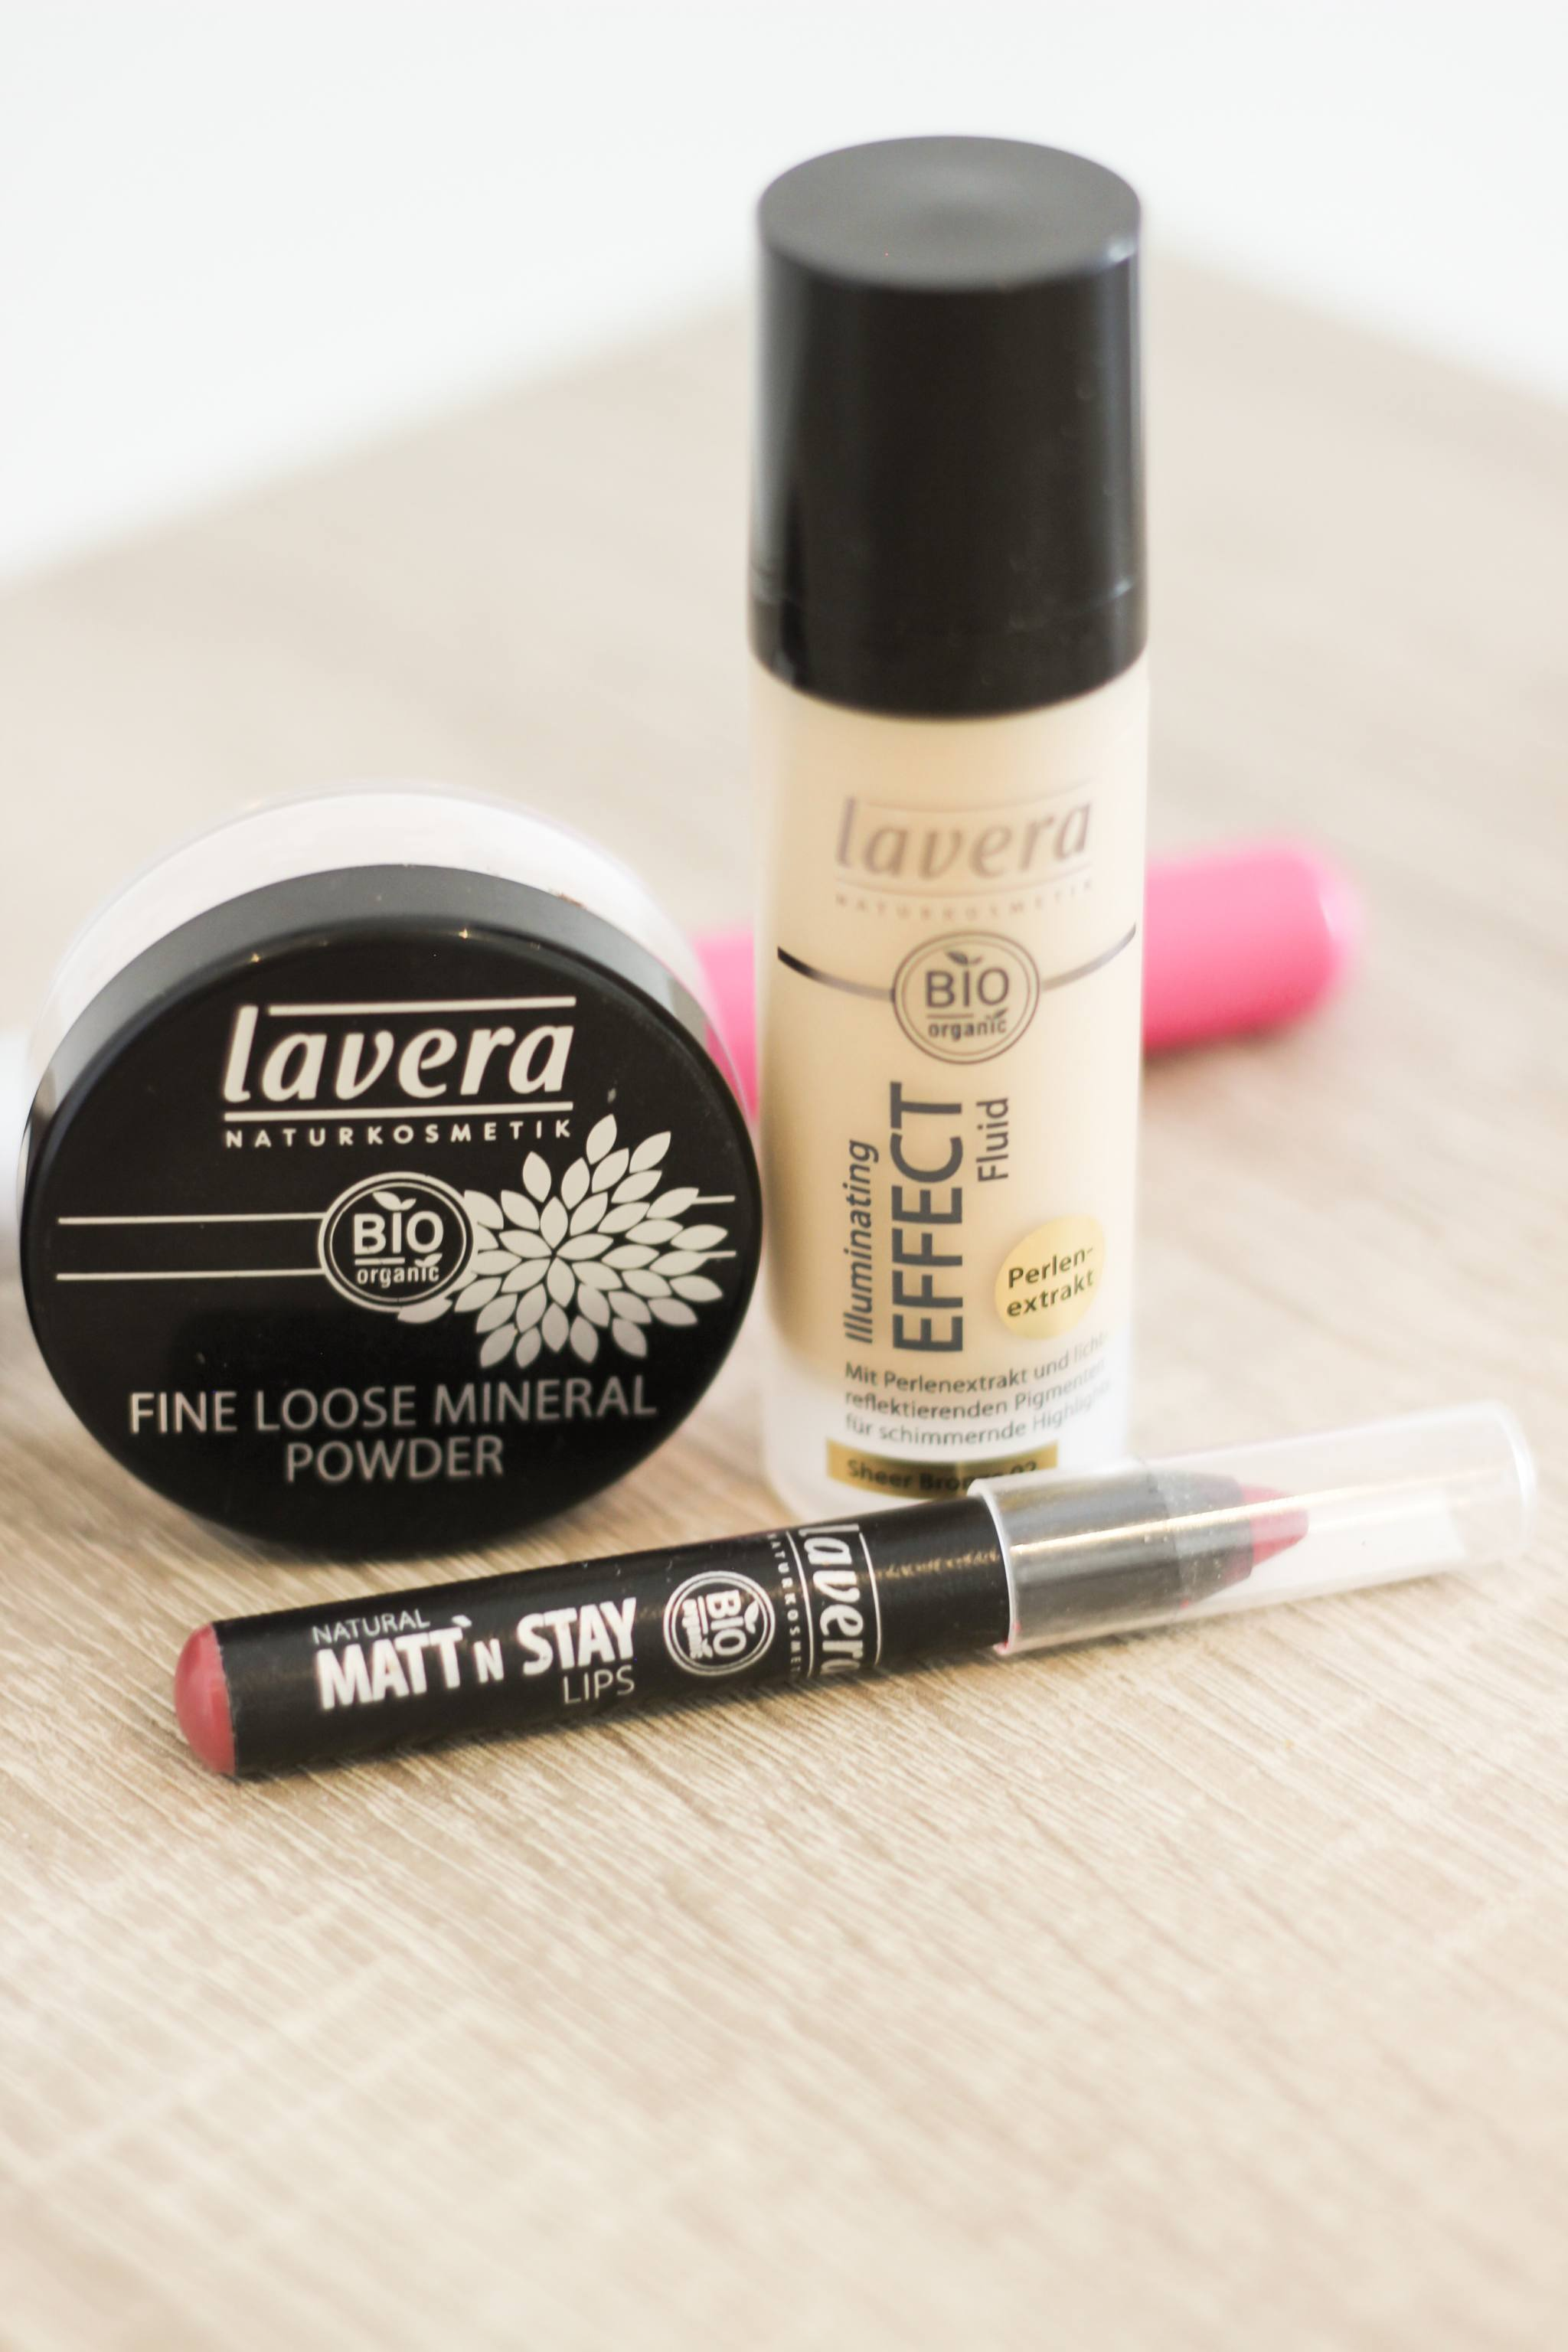 Lavera Make- Up Portrait Powder, Illuminating Liquid, Lip Stick